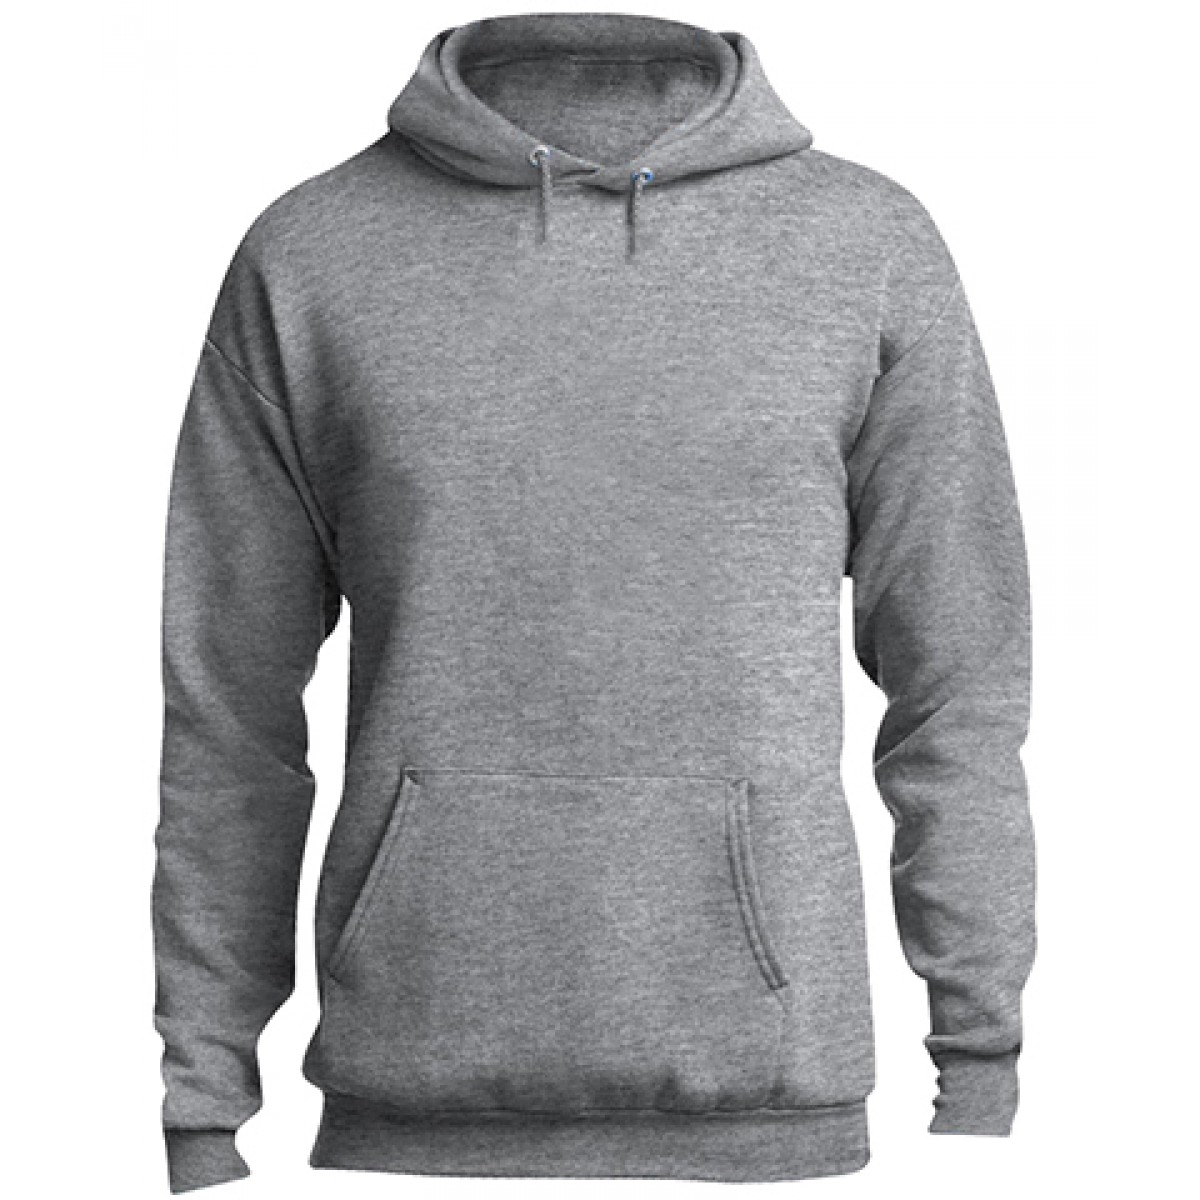 Classic Pullover Hooded Sweatshirt-Athletic Heather-L